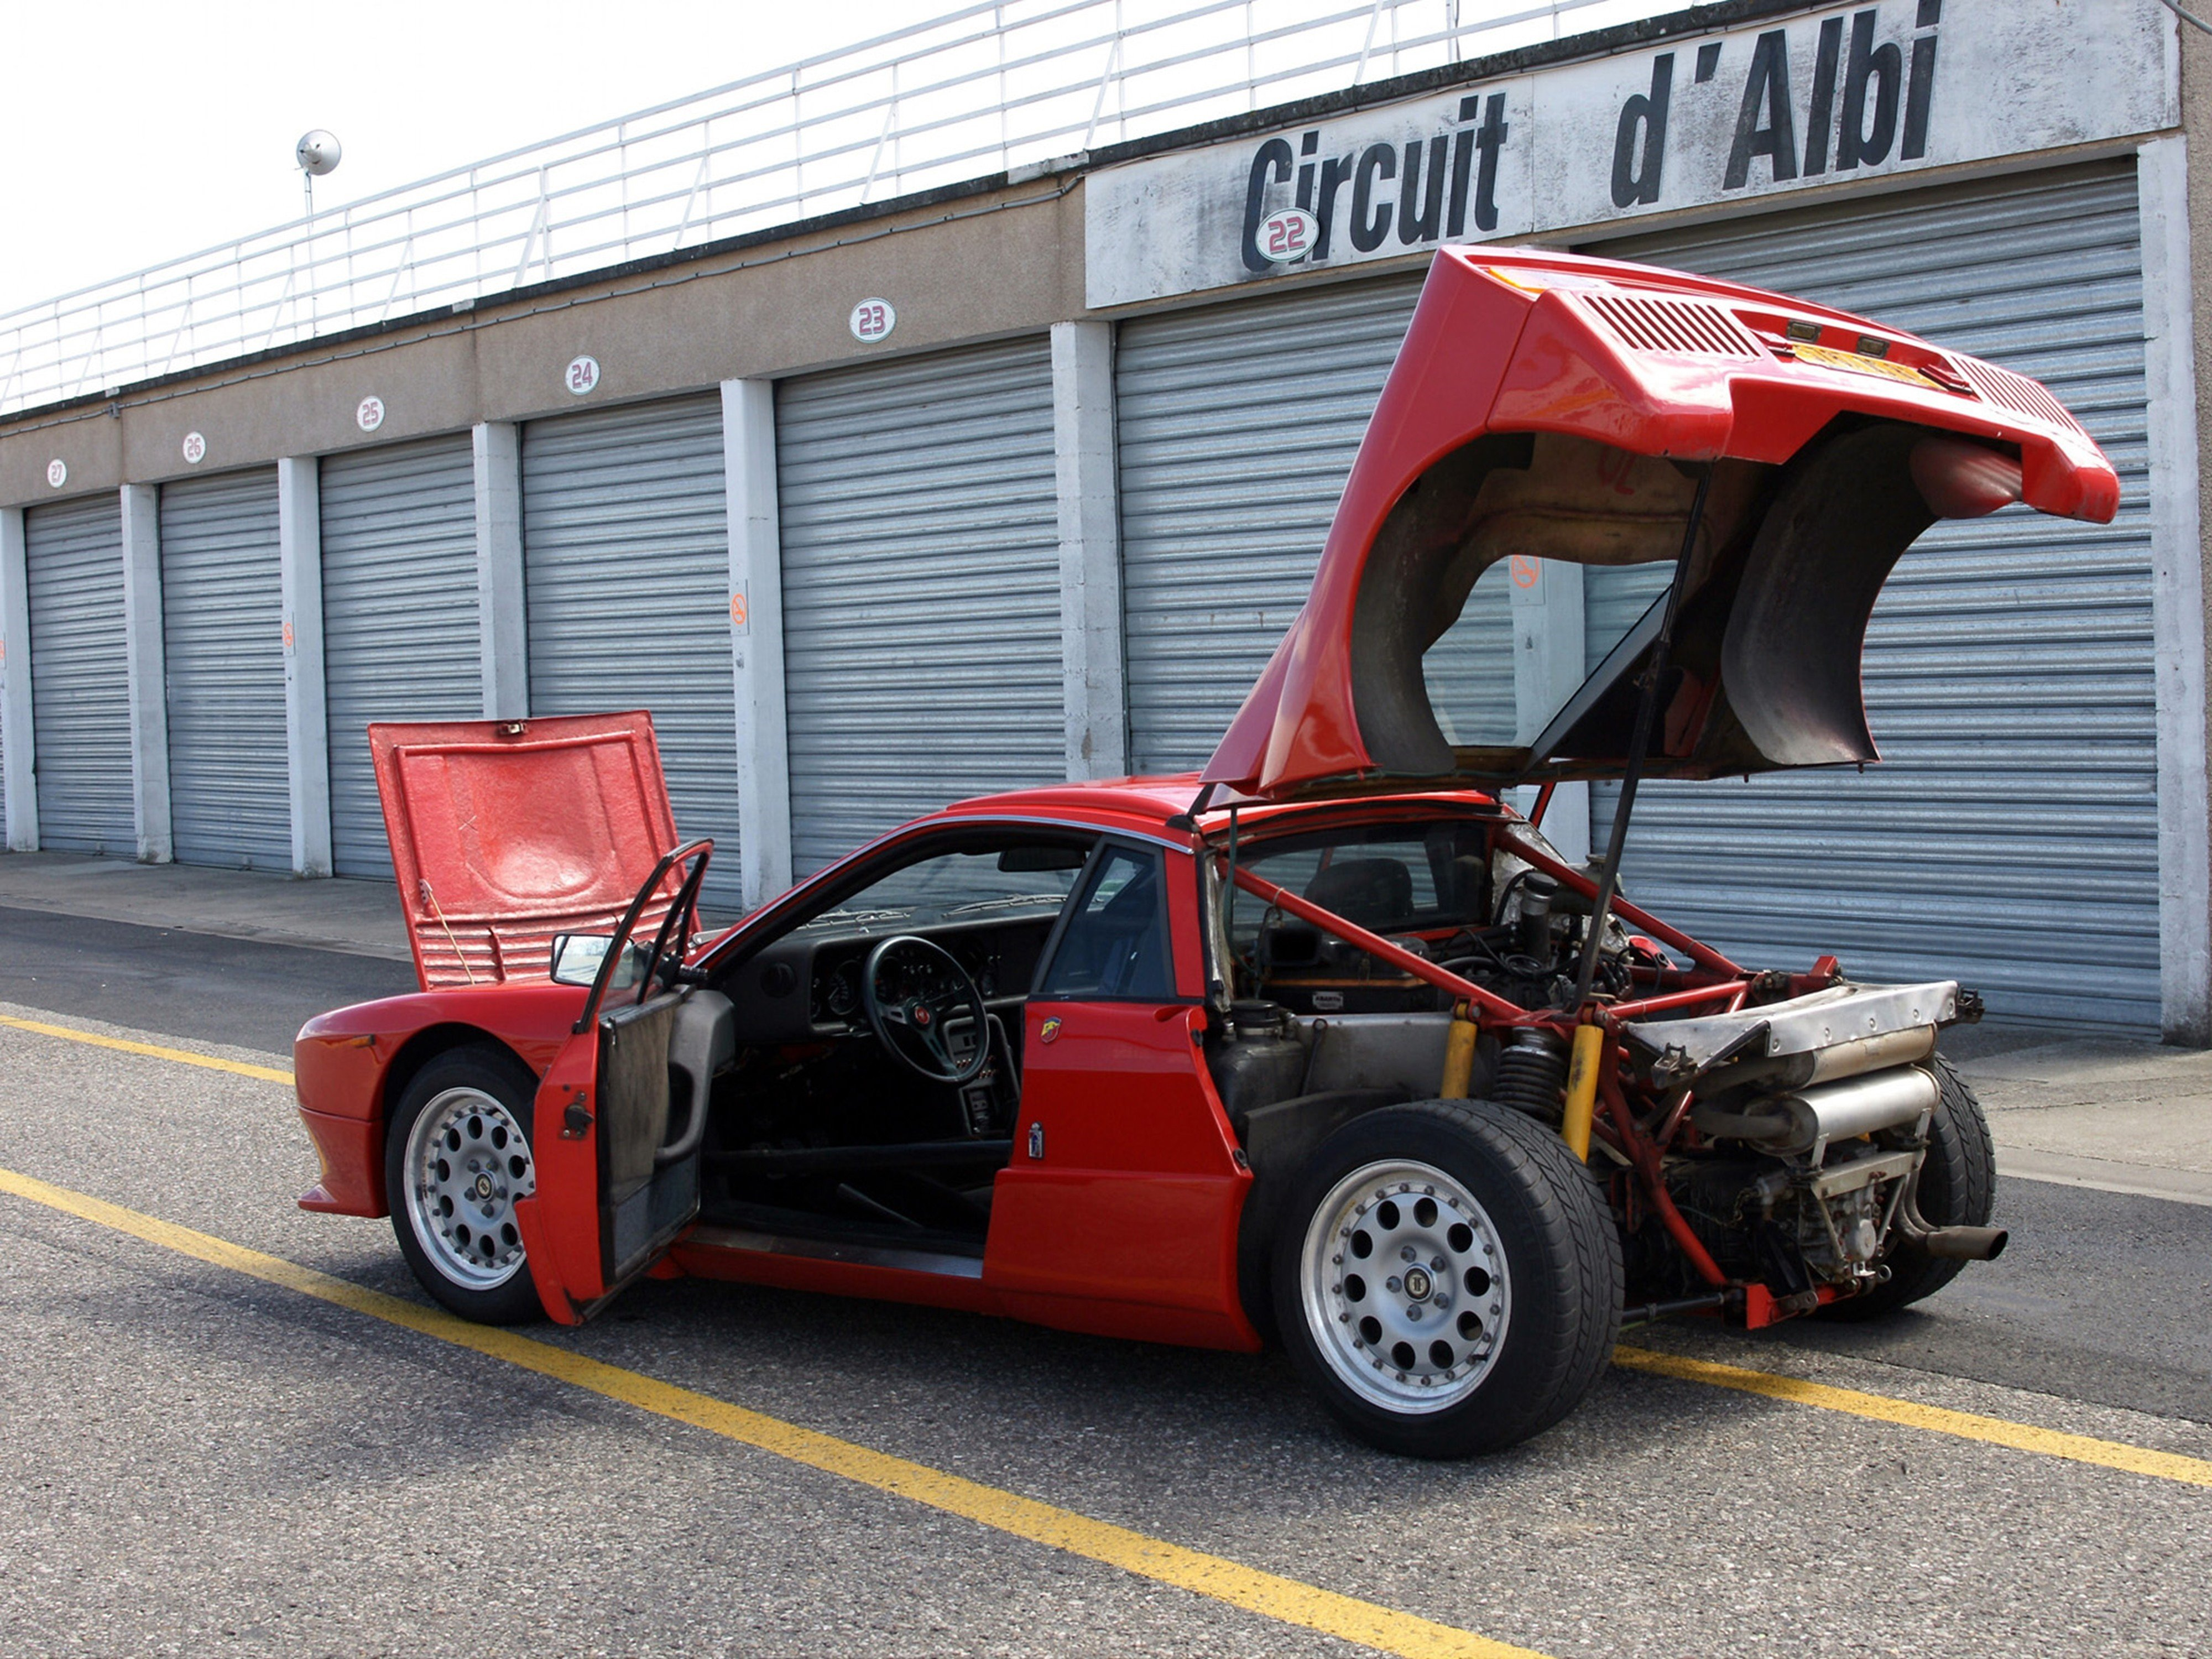 http://oldconceptcars.com/wp-content/uploads/lancia_rally_037_stradale_concept_8.jpg